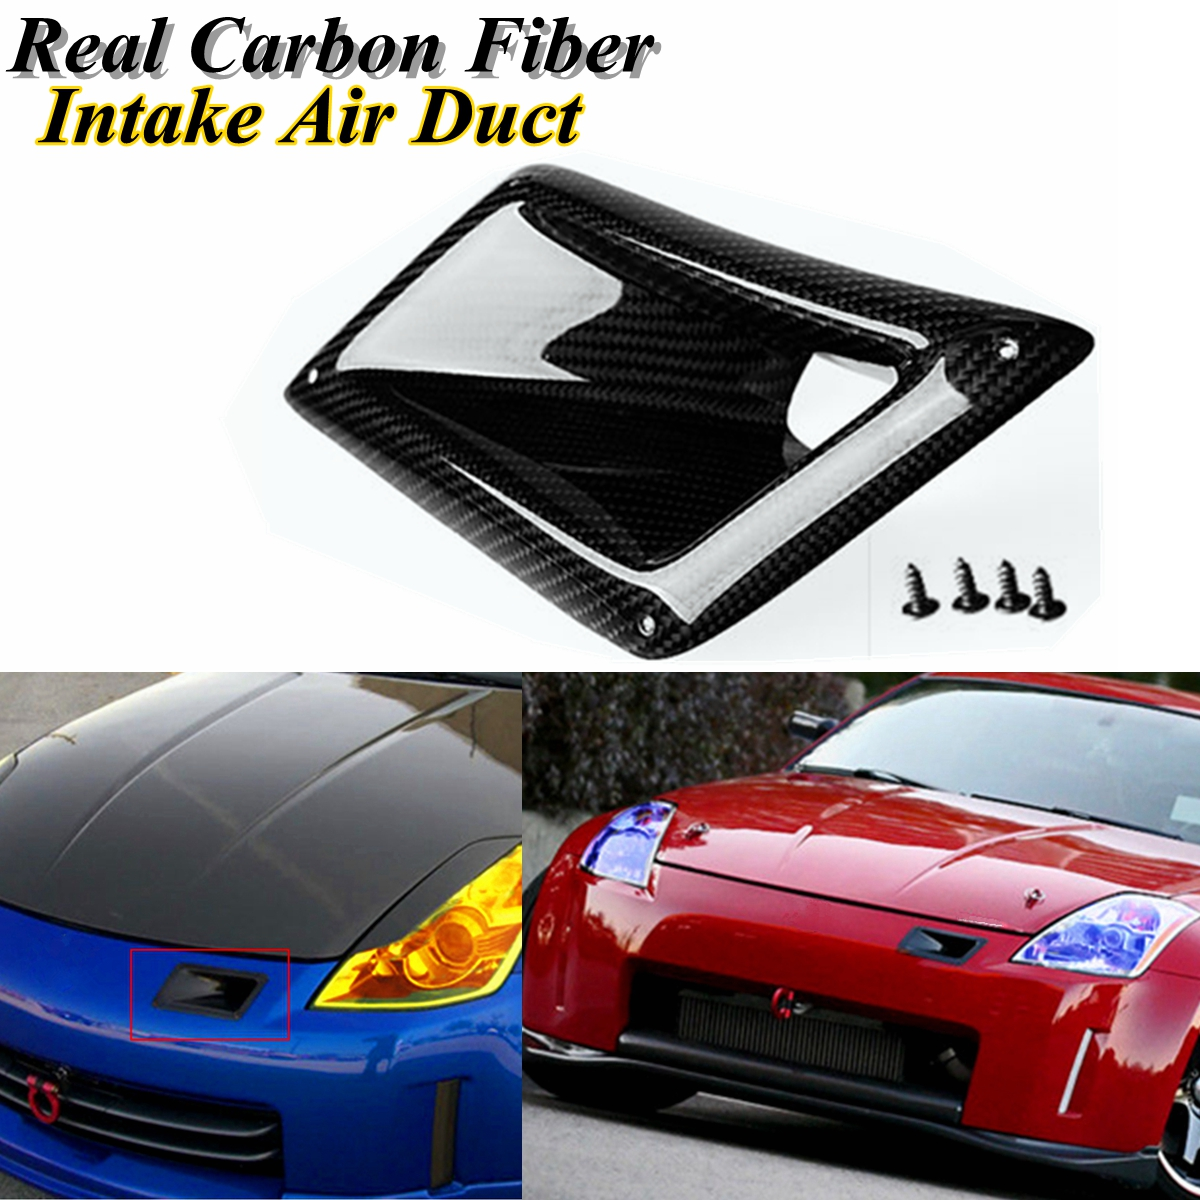 Right Carbon Fiber Side Vent Intake Duct For Nissan 350Z Z33 2005 2006 2007 FM